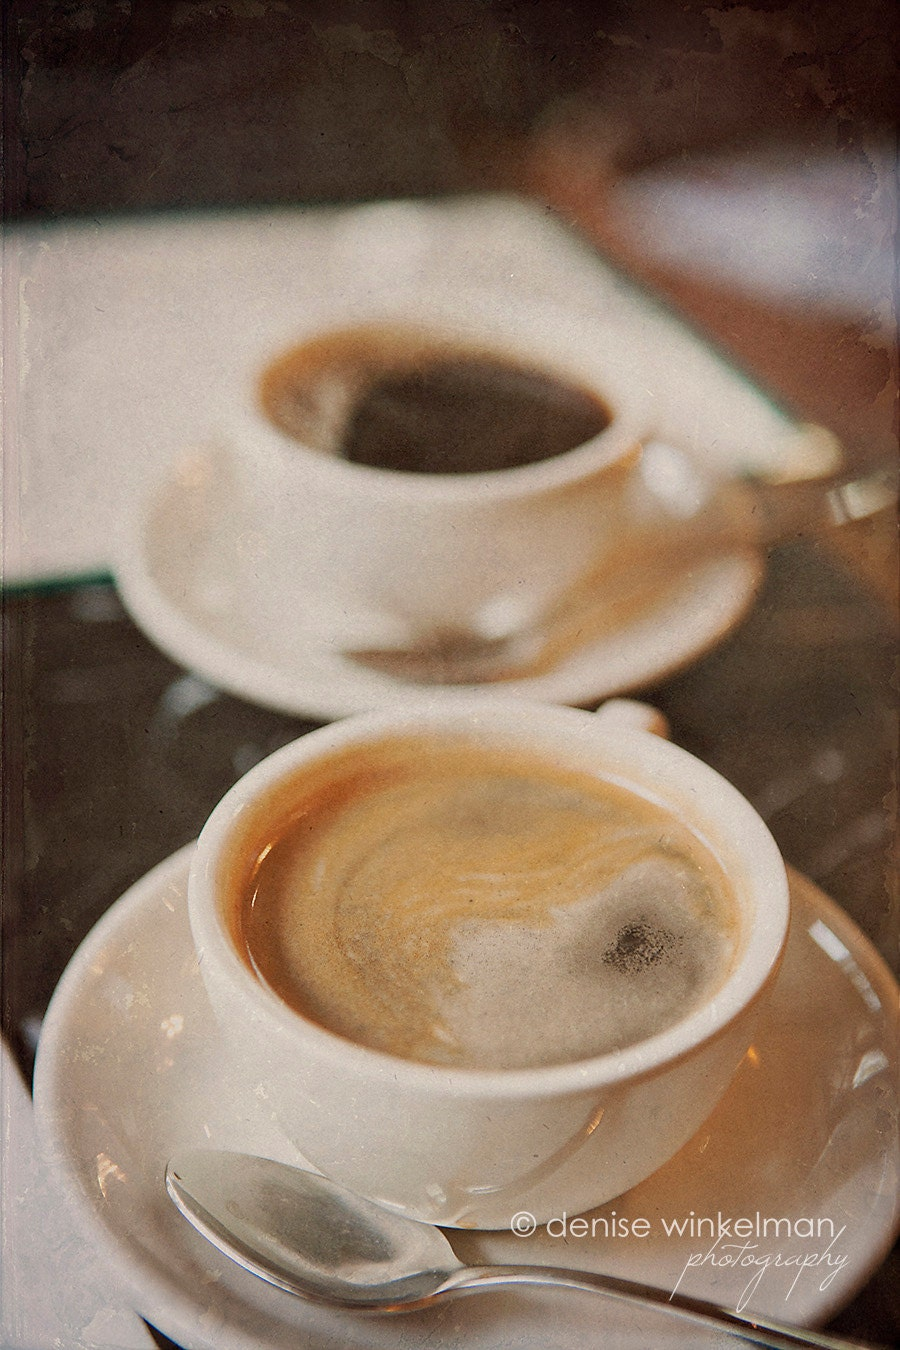 Coffee Duet, Scenes from a Cafe Series, 1 - Fine Art Photo - winkelmanphotoworks